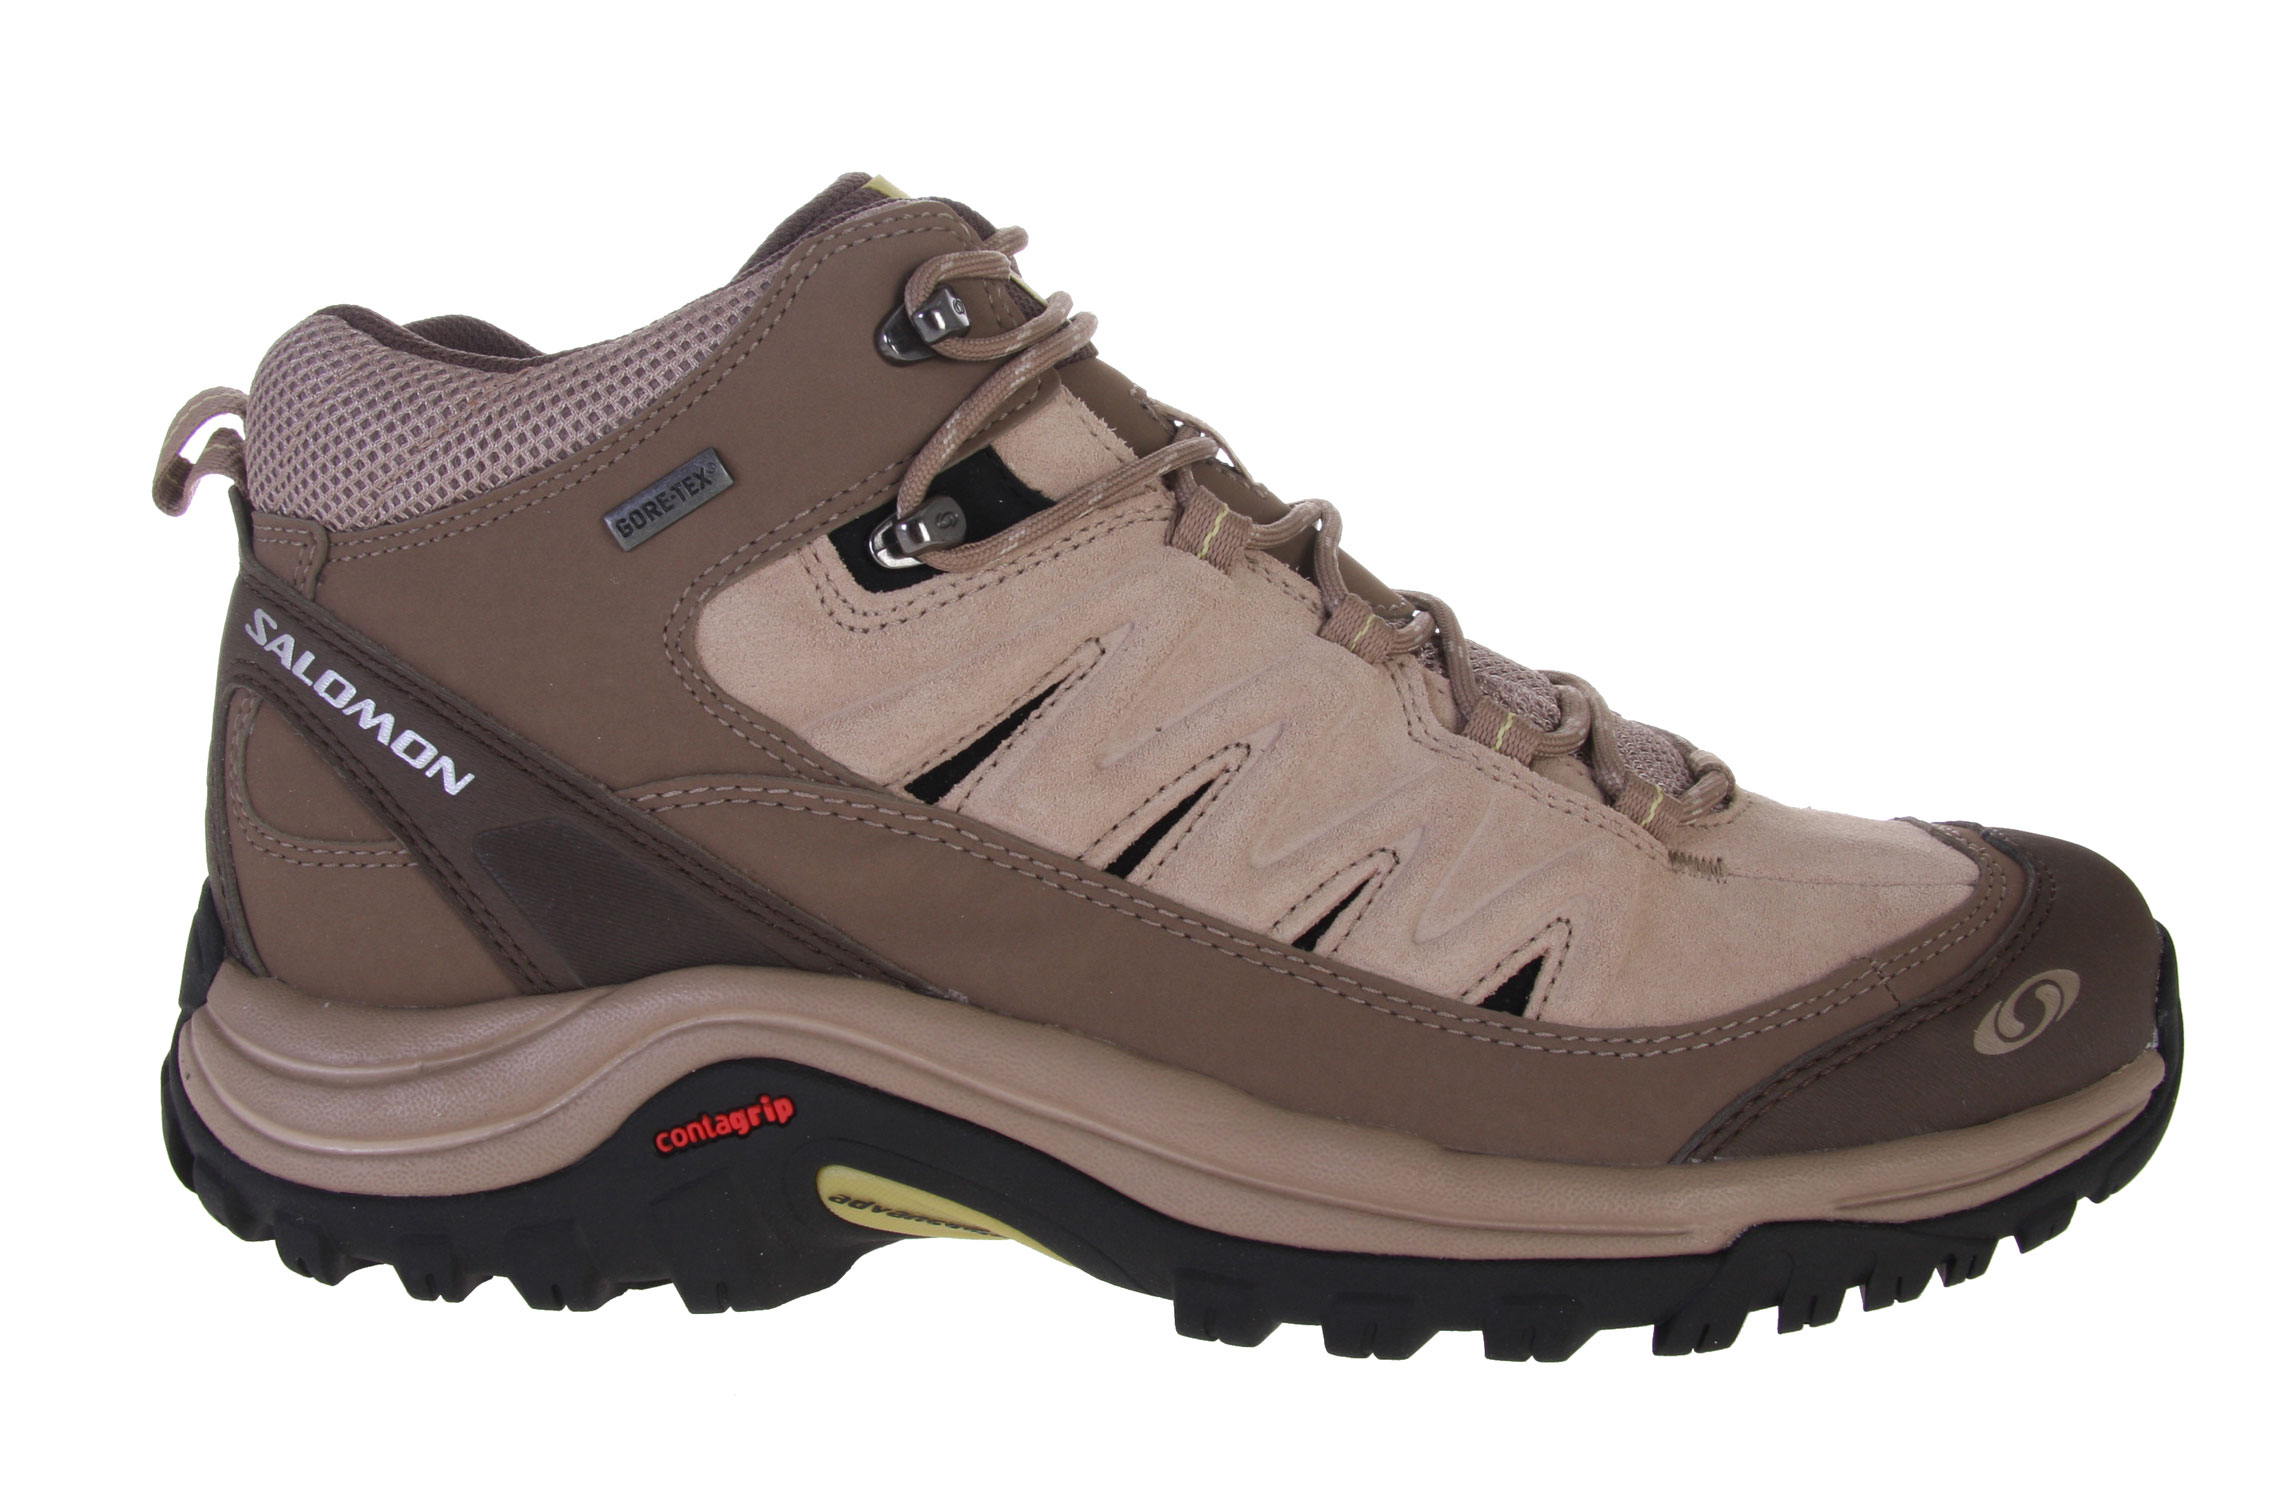 Camp and Hike Supportive, comfortable mid cut hiking shoes with year-round climate versatility of GORE-TEX.Key Features of the Salomon Exit Peak Mid GTX Hiking Shoes: Mud guard GORE-TEX Performance Comfort Footwear 2D Advanced Chassis - $83.95